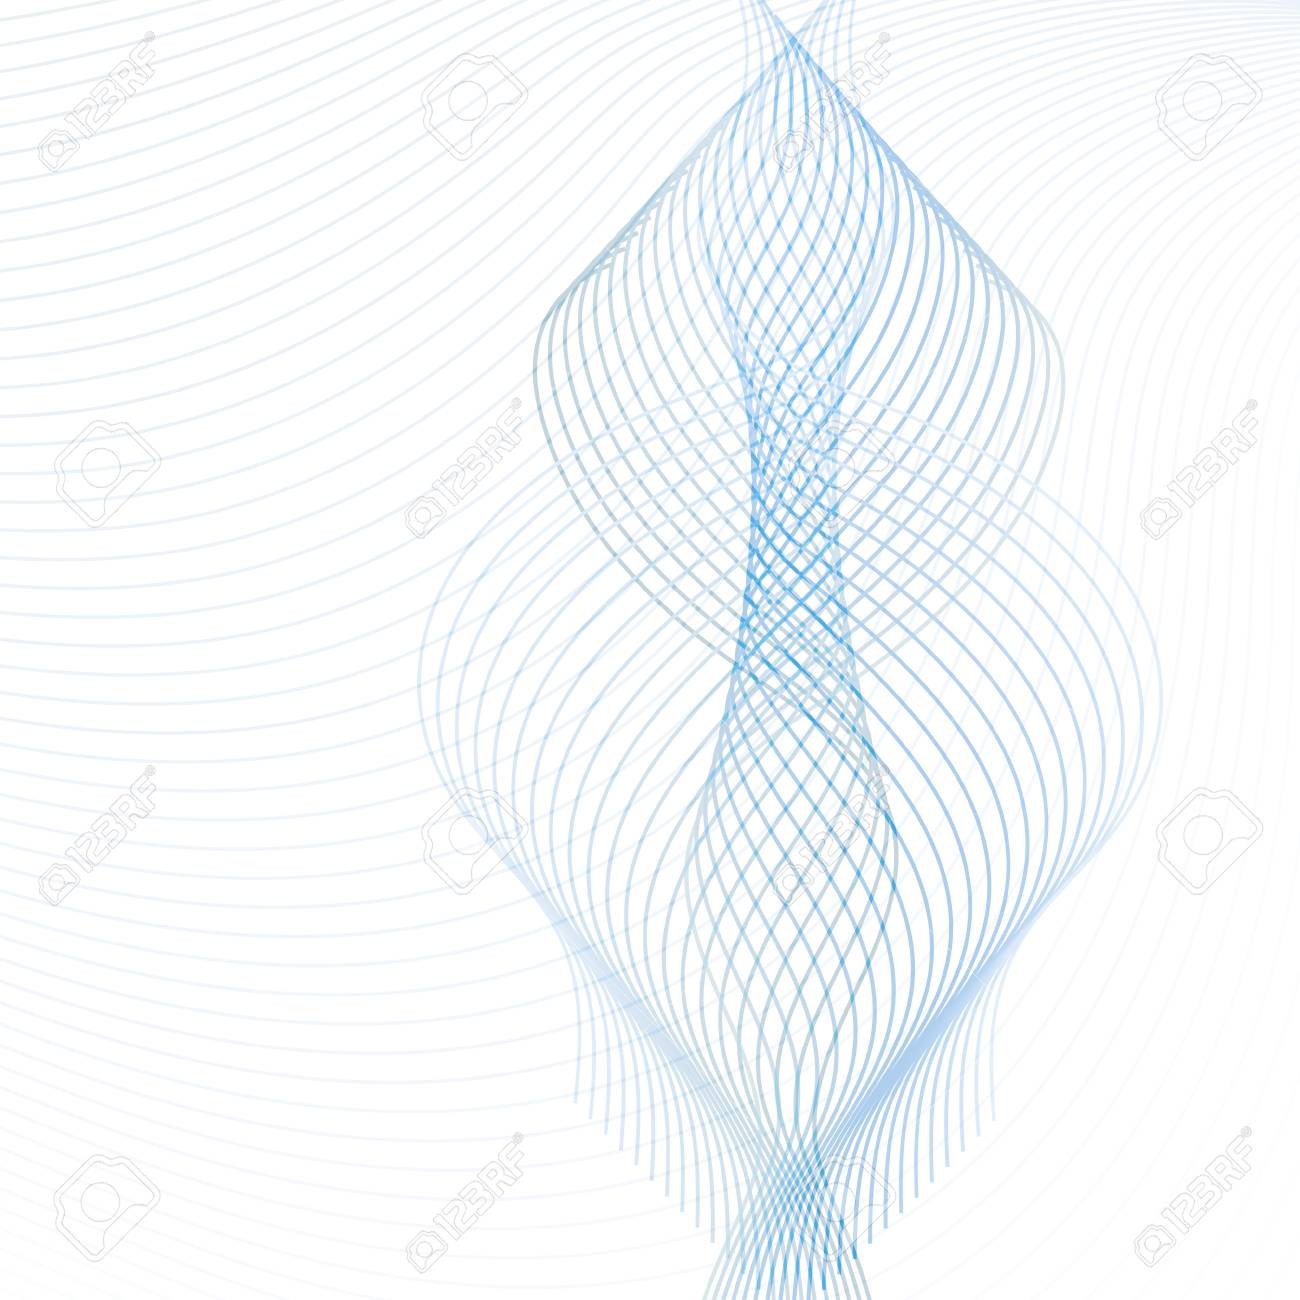 Ornamental design element. Abstract vector with transparent blue and gray waving lines. Technology futuristic template, for websites, presentations, brochures - 108303531